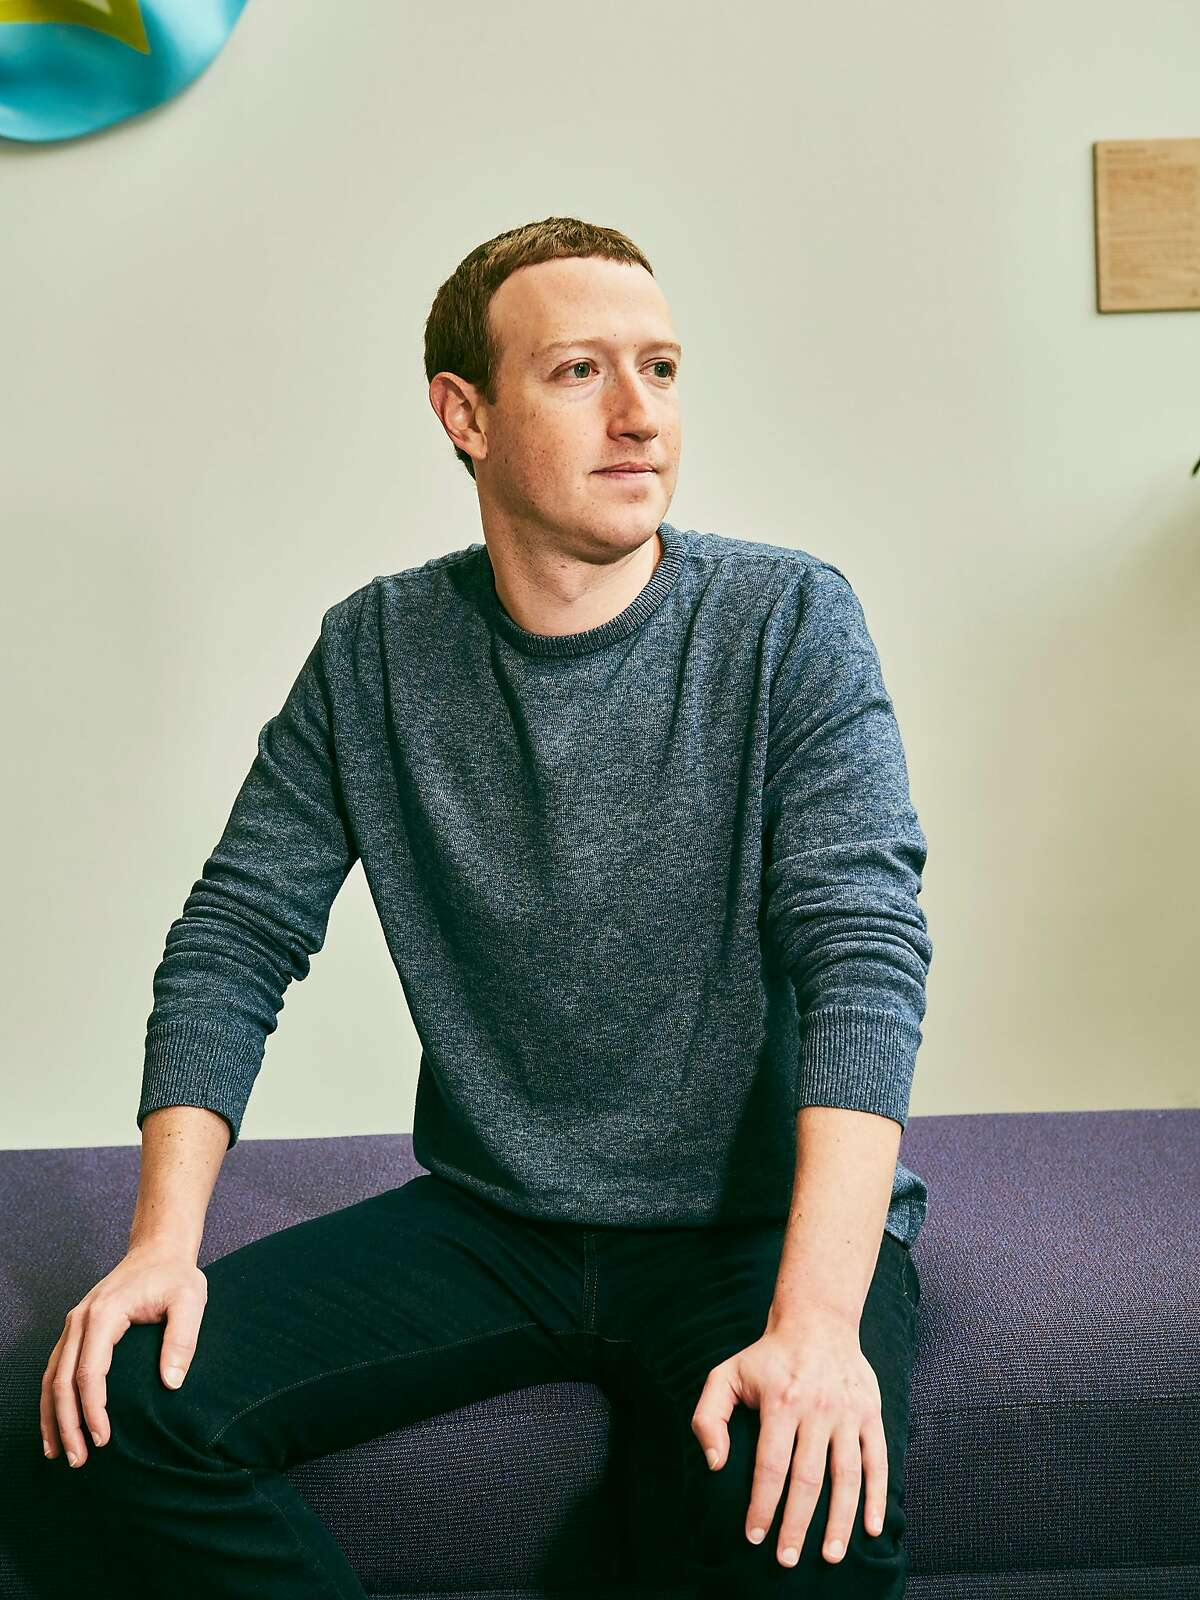 FILE -- Mark Zuckerberg, the founder of Facebook, in Palo Alto, Calif., April 11, 2019. The social network is straining to deal with skyrocketing usage as its 45,000 employees work from home for the first time as the coronavirus spread around the world. (Jessica Chou/The New York Times)